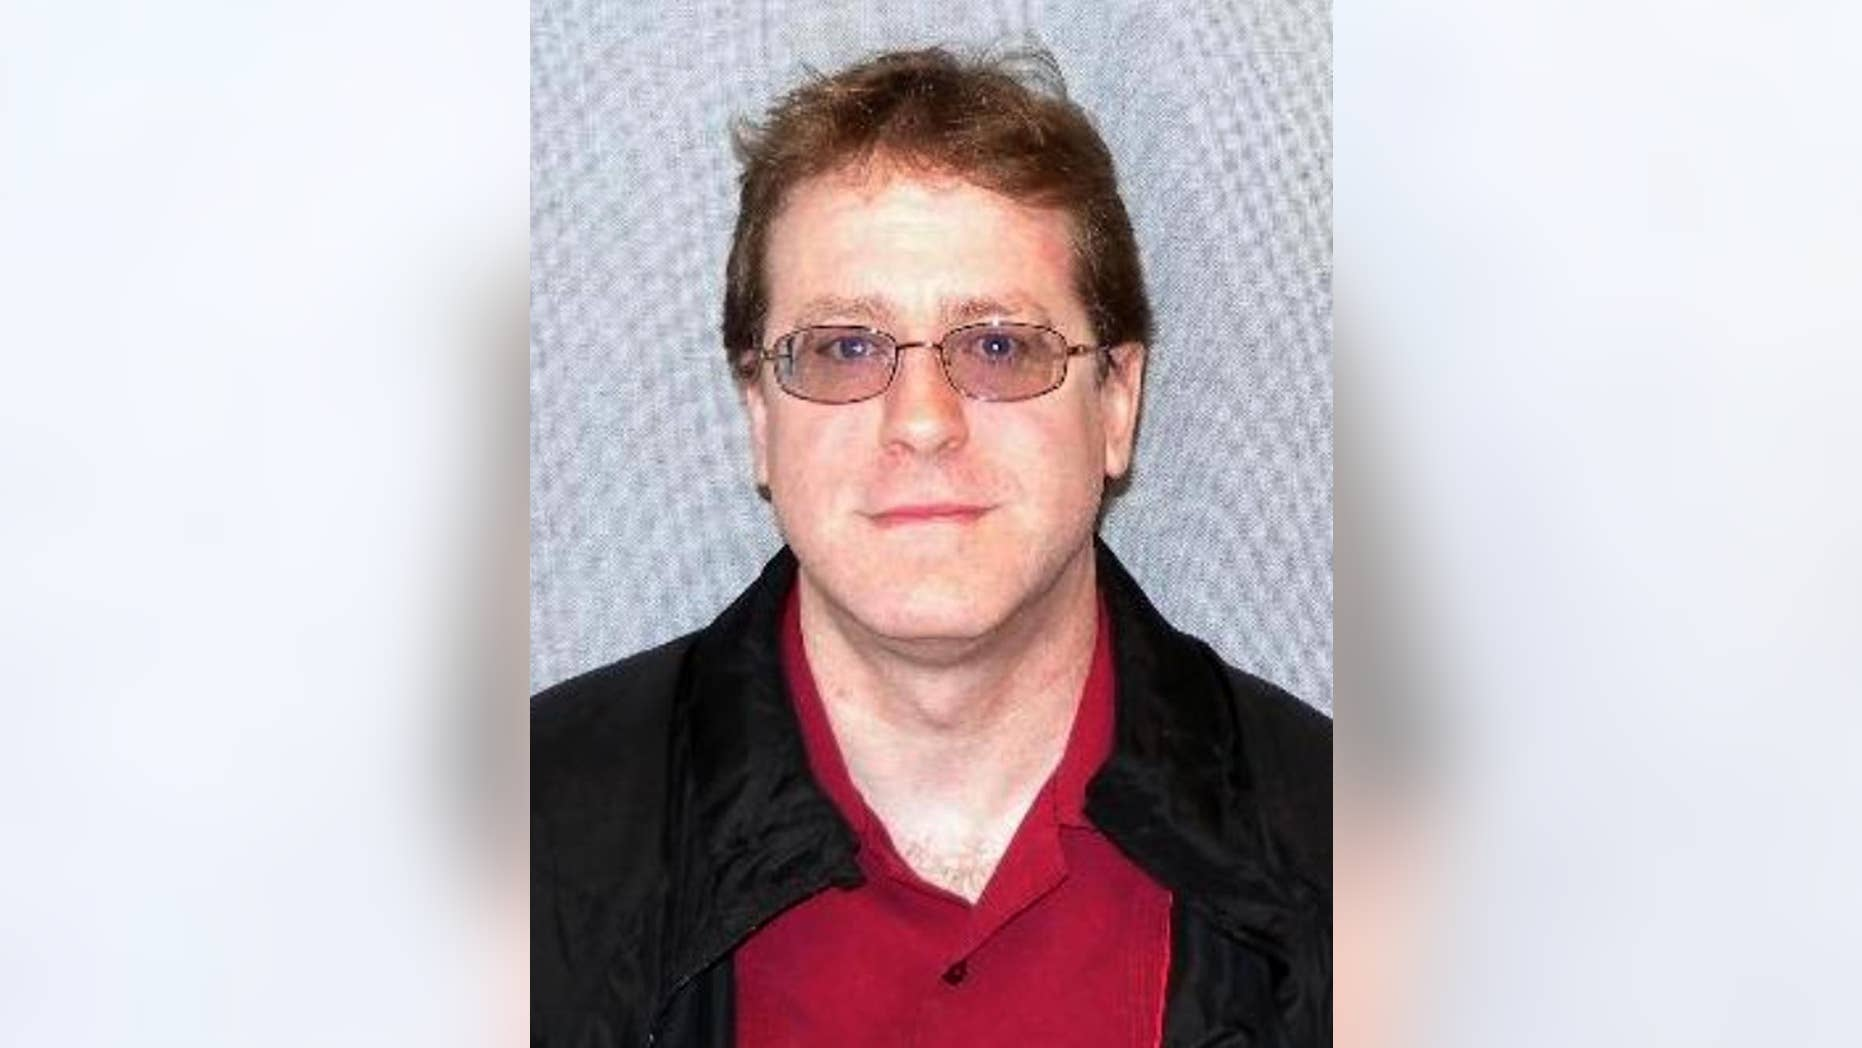 This 2011 photo provided by the Wisconsin Department of Corrections shows D. Jeremy John. John, a top psychologist at Wisconsin's troubled youth prison was fired in December of 2016 for allegedly ignoring the requests of dozens of inmates who asked for help, according to his termination letter from the Department of Corrections. He appealed the firing and the two sides agreed in April of 2017, to characterize his departure as a resignation. (Wisconsin Deparment of Corrections via AP)